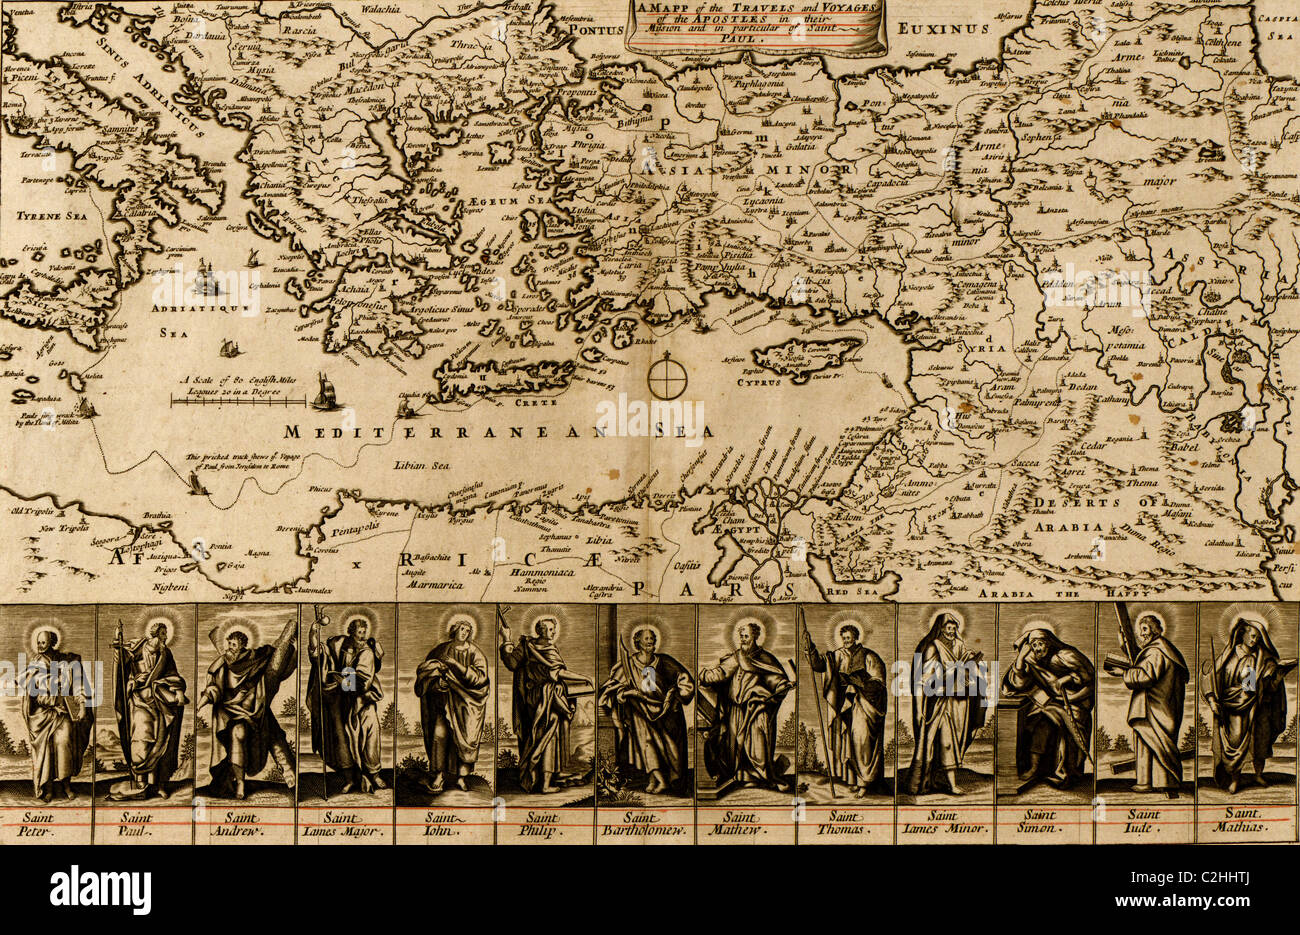 Map of the Travels & Voyages of the Apostles - Stock Image